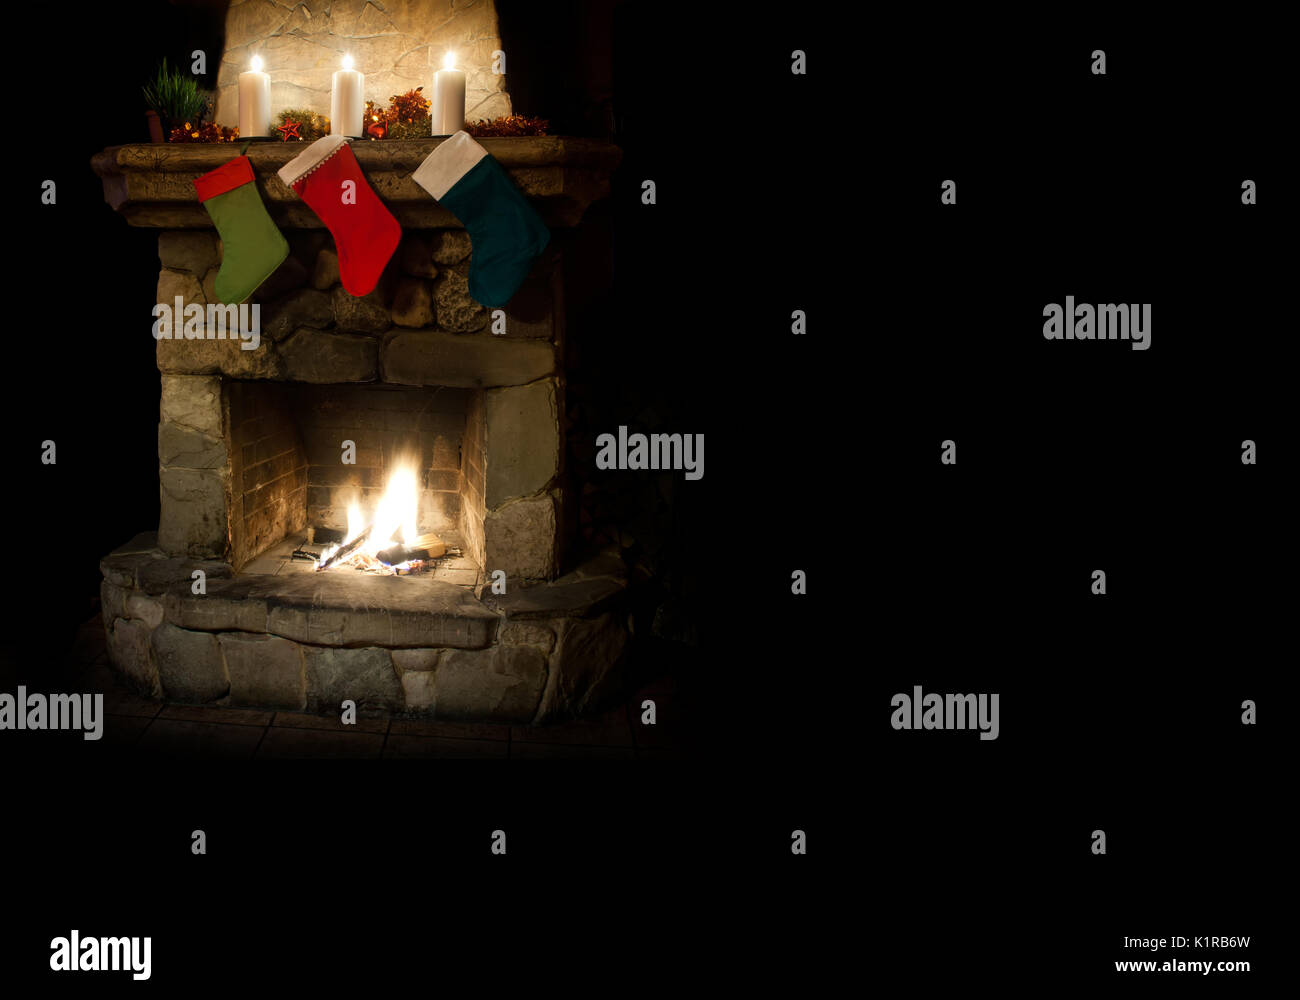 Christmas Postcard Template Colorful Stocking On Fireplace Stock - Christmas postcard template